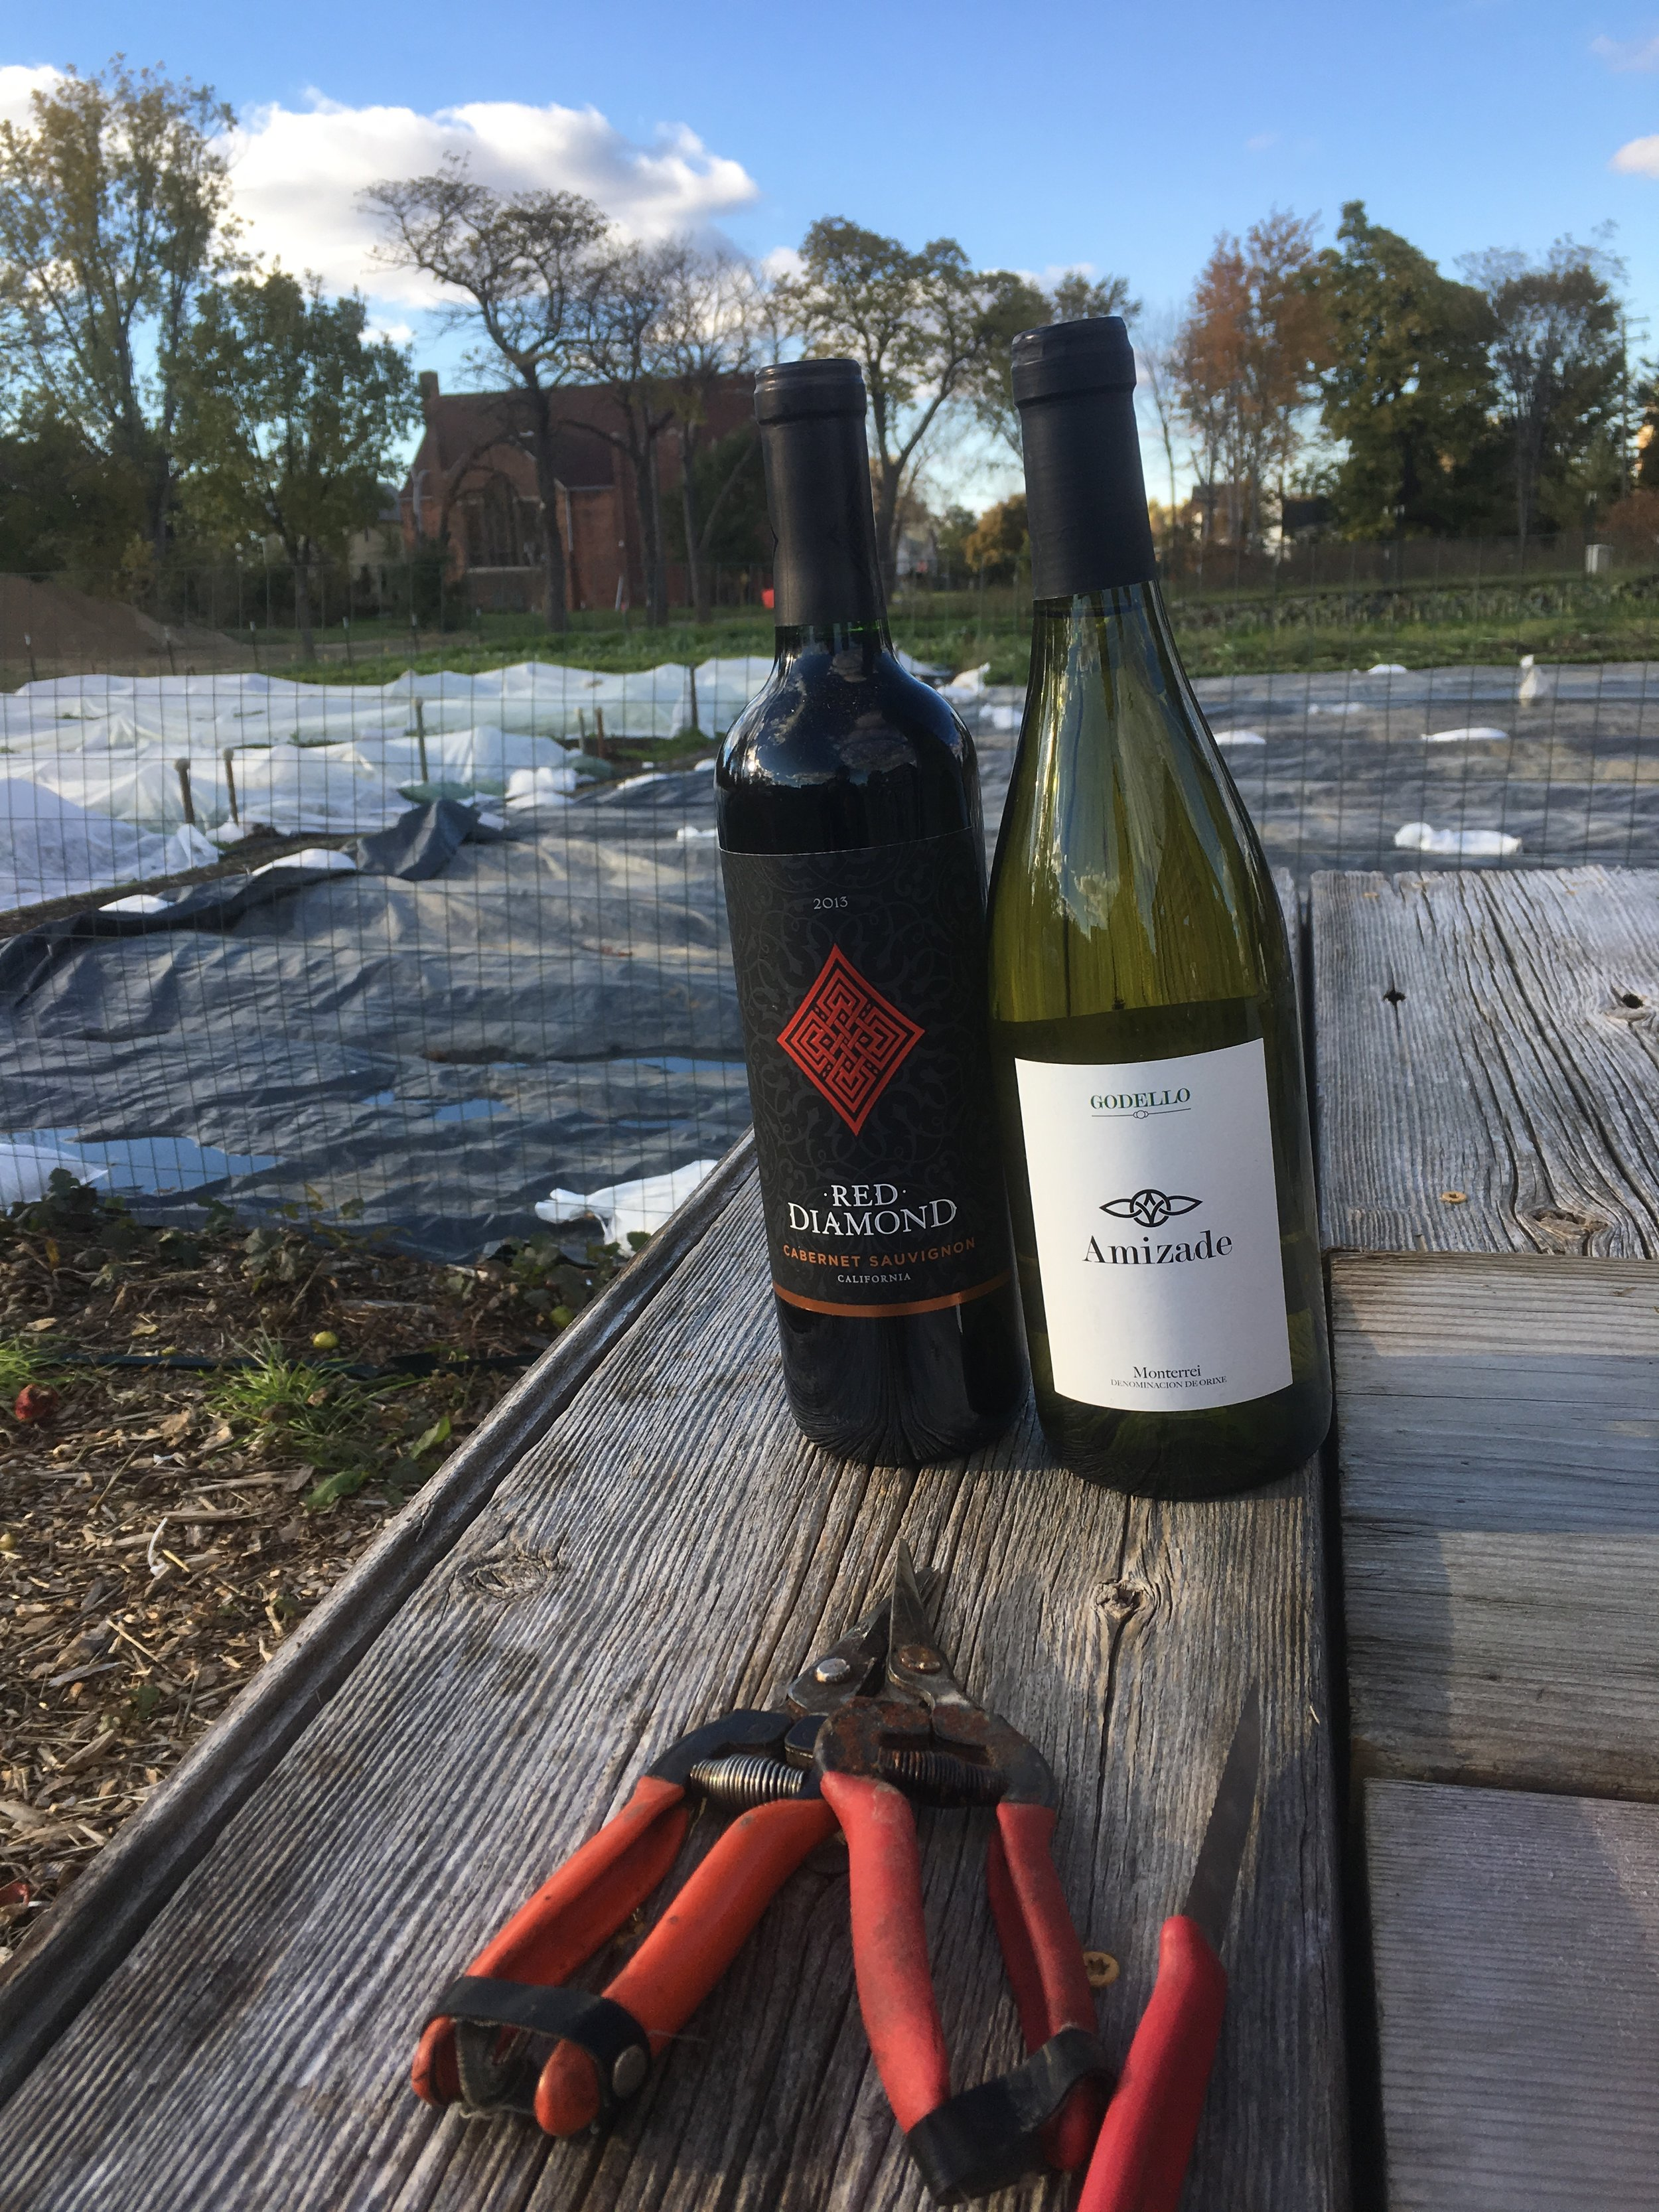 Wine and Weeding - Come visit the farm and help us keep up on weeding!Every Wednesday 6-8pm from May to OctoberCheck our social media for updates.Oh, and there's free wine!